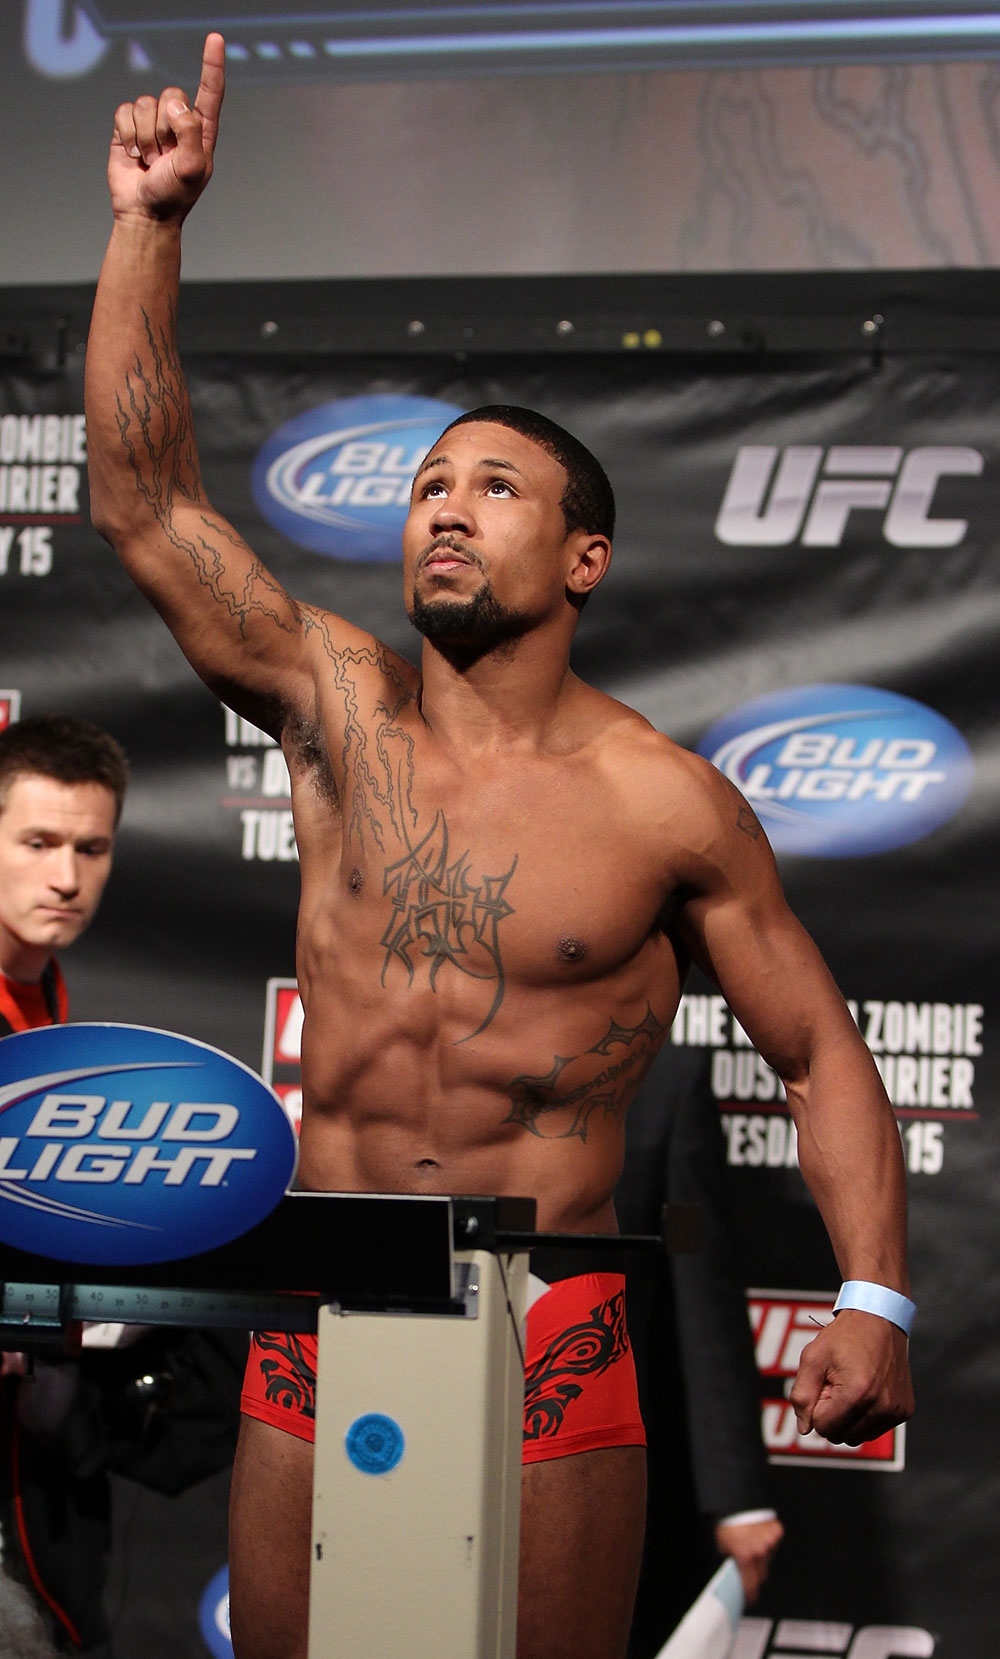 FAIRFAX, VA - MAY 14:  Marcus LeVesseure makes weight during the UFC on Fuel TV official weigh in at Patriot Center on May 14, 2012 in Fairfax, Virginia.  (Photo by Josh Hedges/Zuffa LLC/Zuffa LLC via Getty Images)